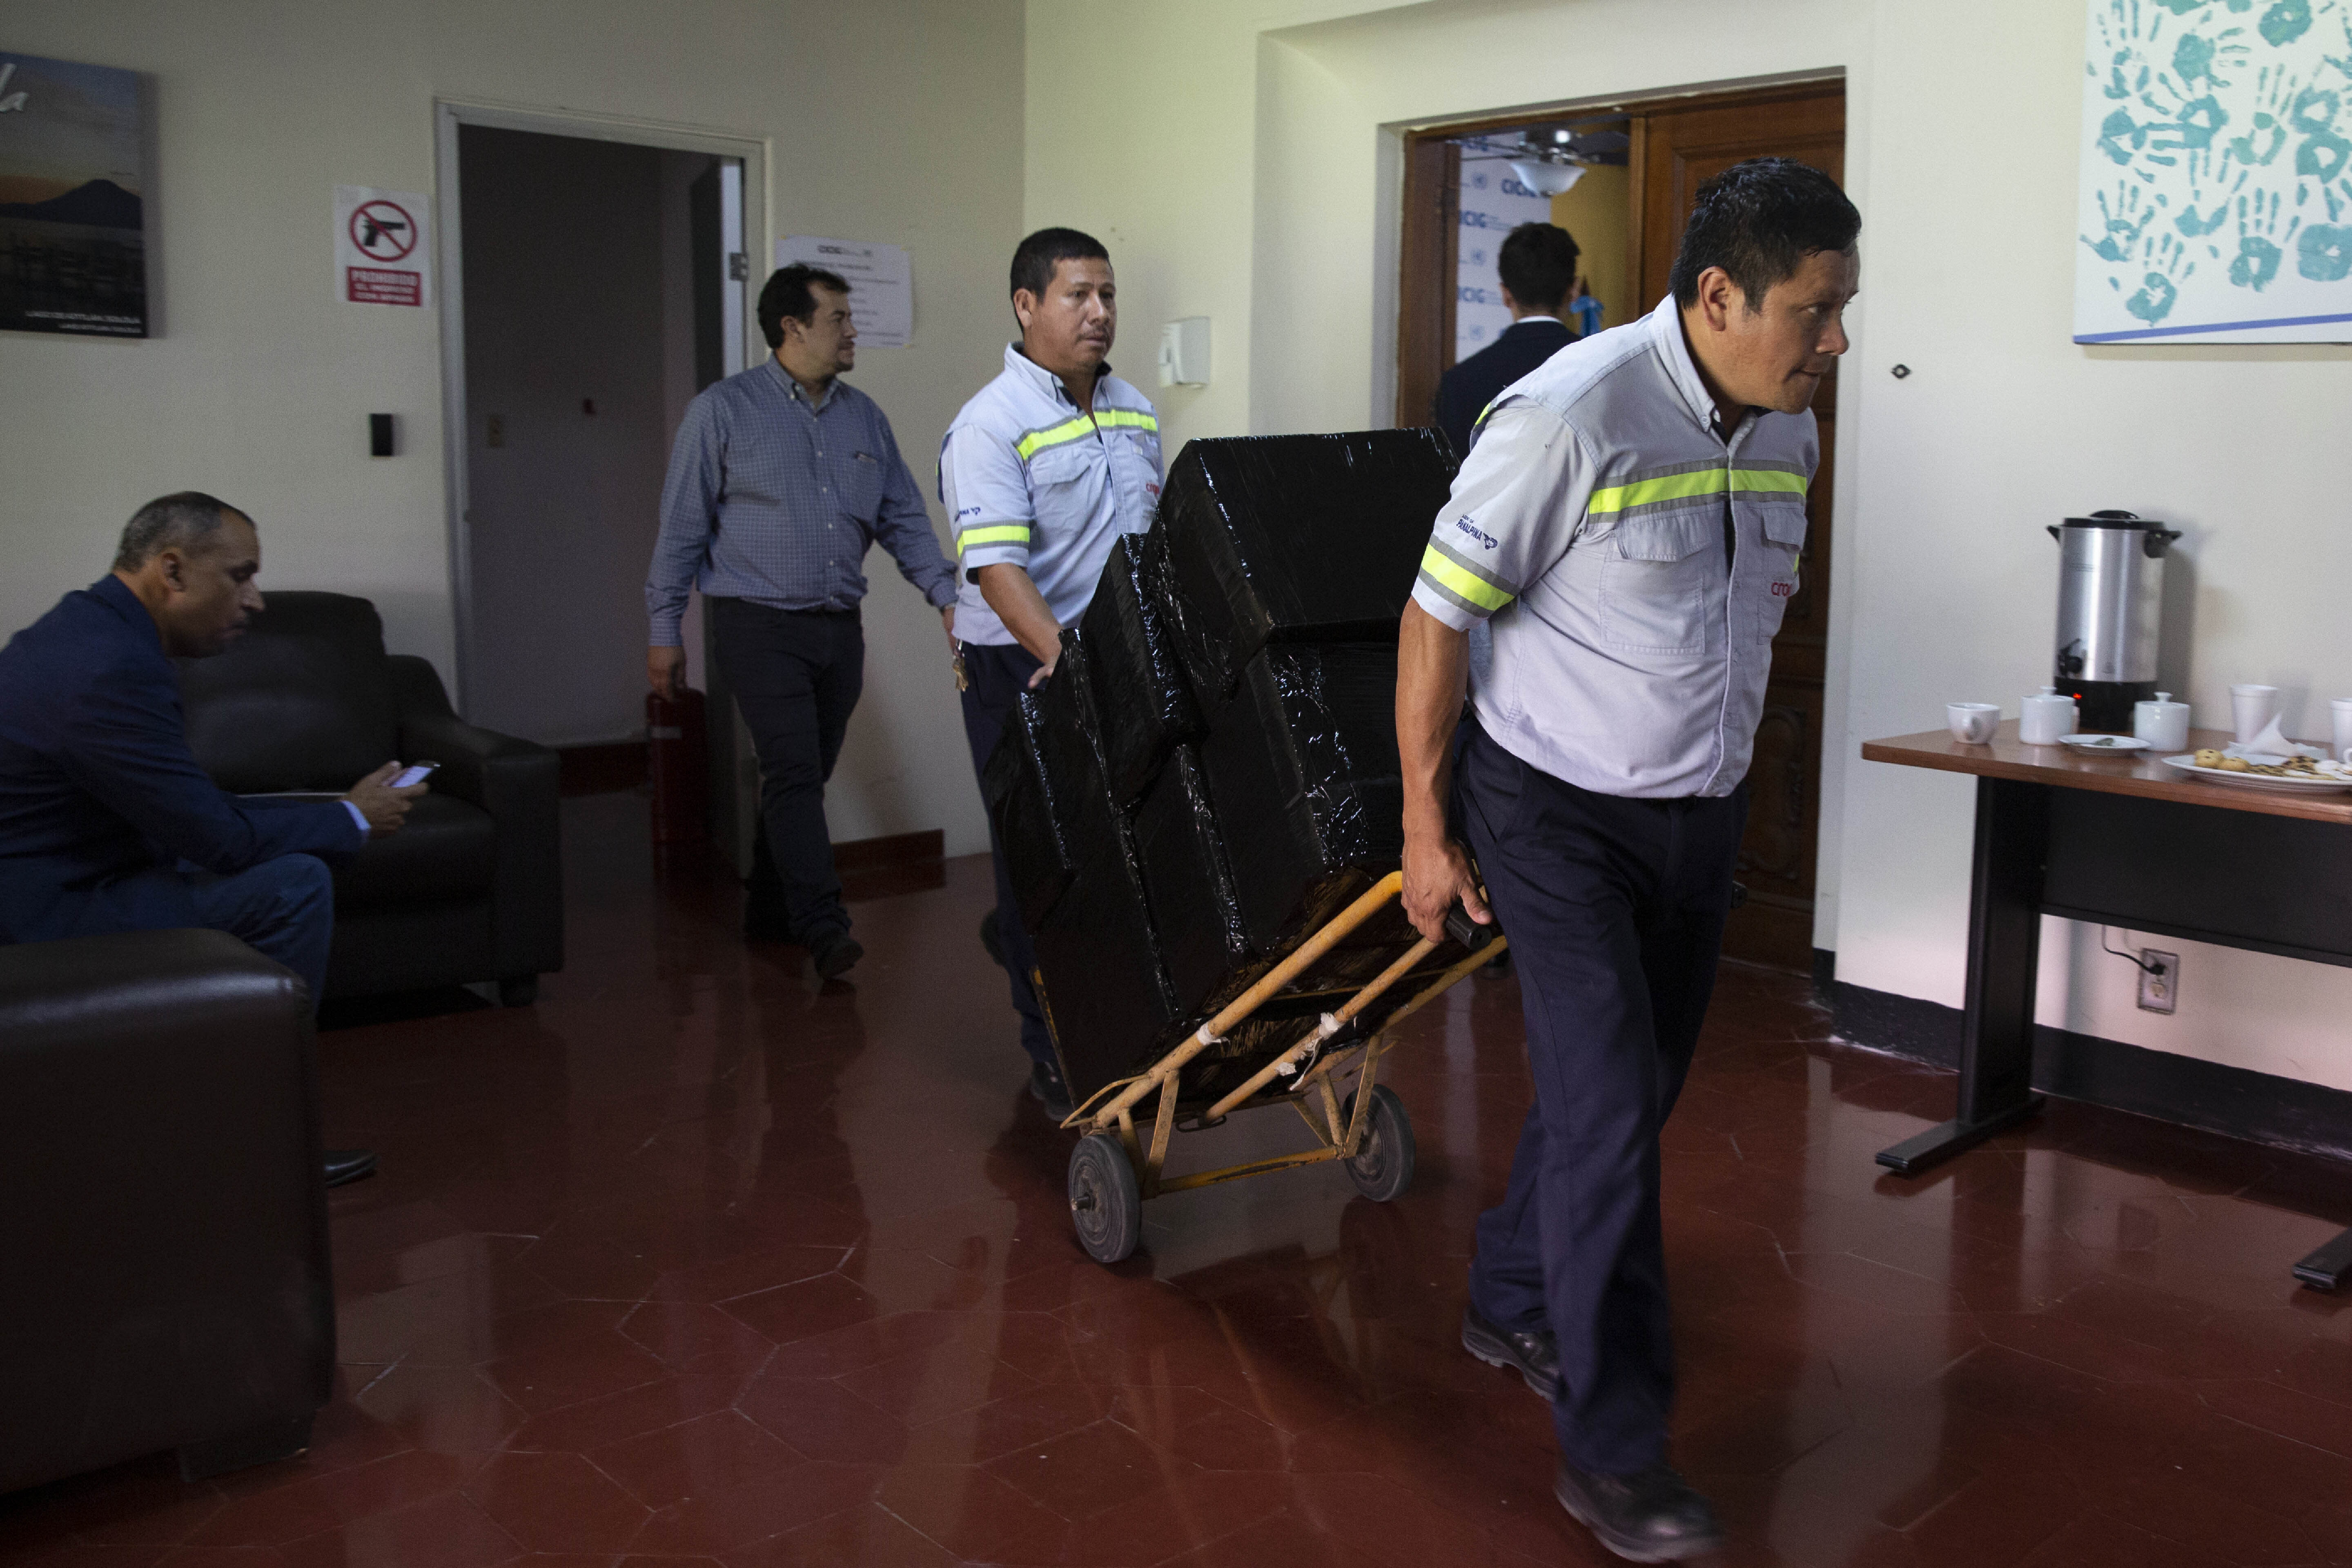 Workers move out items on a dolly as the United Nations International Commission Against Impunity, CICIG, moves out of its headquarters in Guatemala City, Wednesday, Aug. 28, 2019. The UN mission it's closing after 12 years of operation in Guatemala. (AP Photo/Moises Castillo)